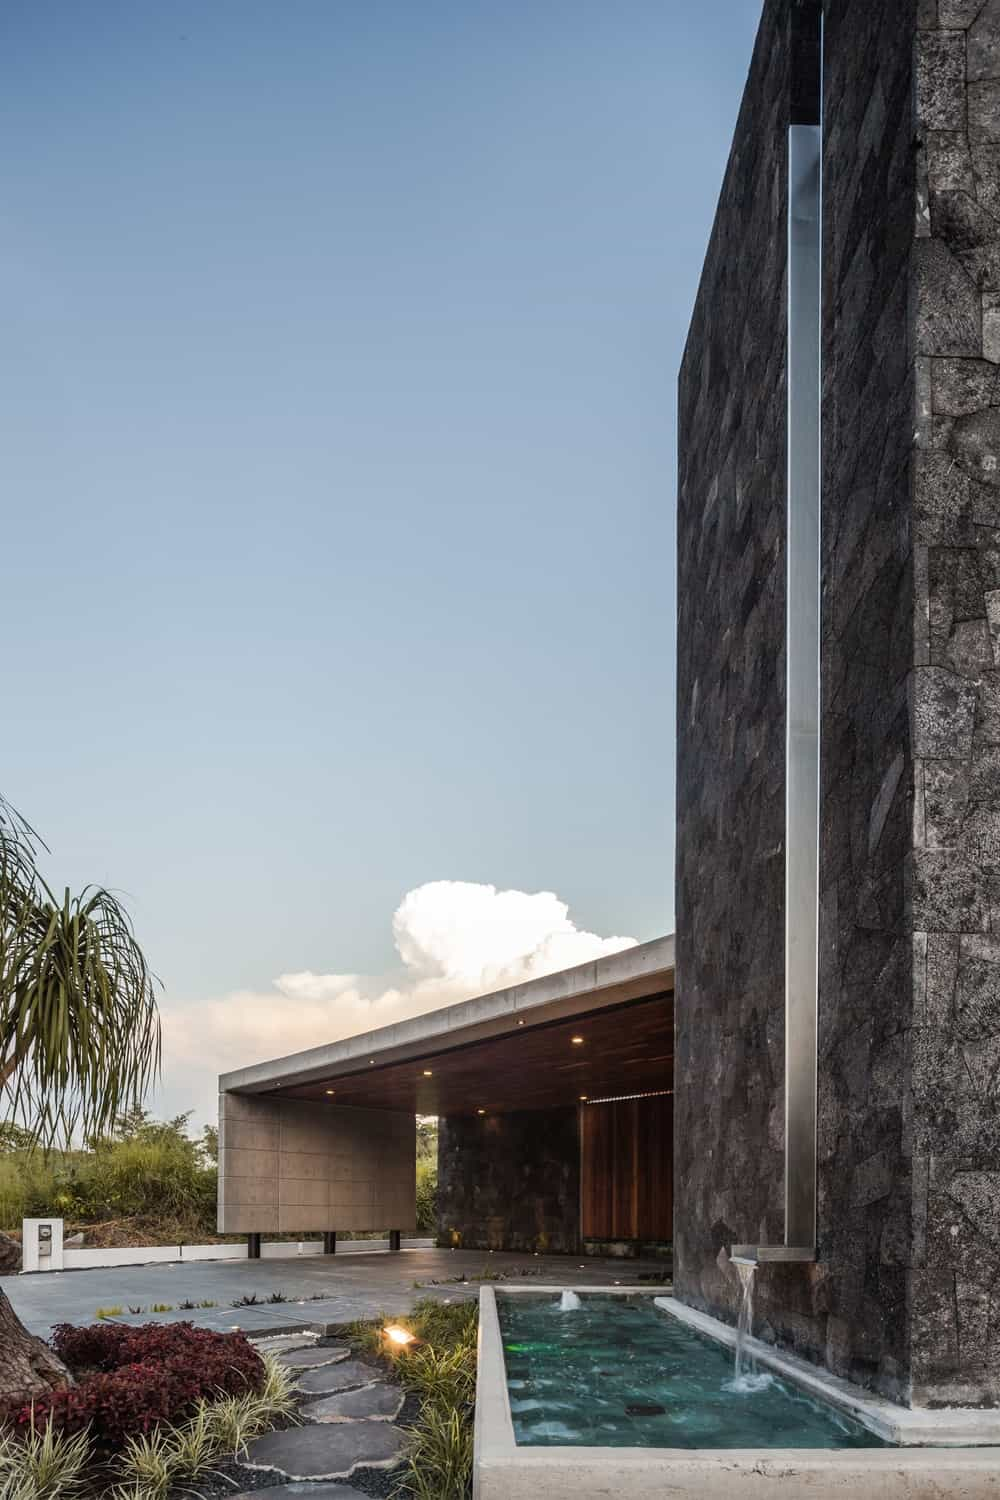 Water feature in the Casa Kaleth designed by Di Frenna Arquitectos.